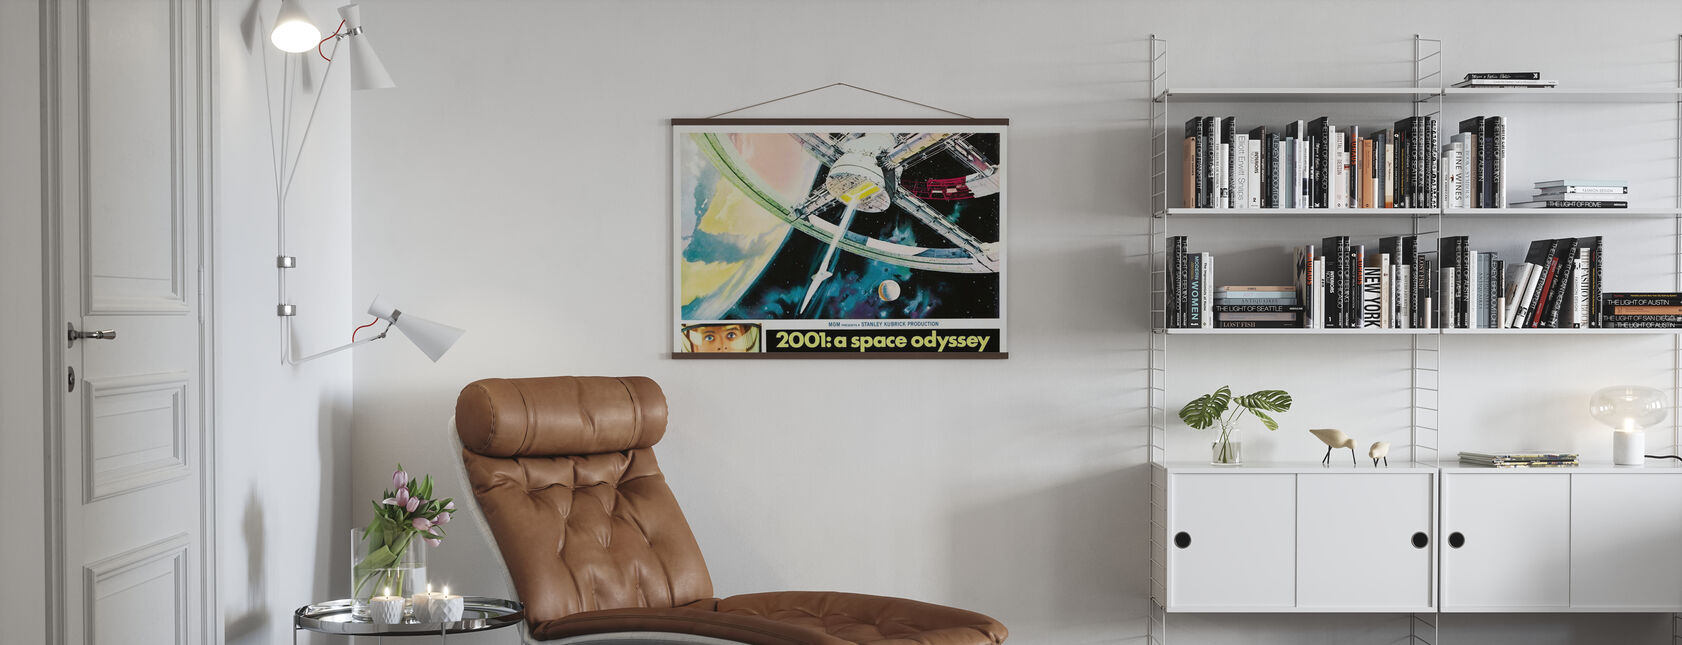 2001 A Space Odyssey - Poster - Living Room